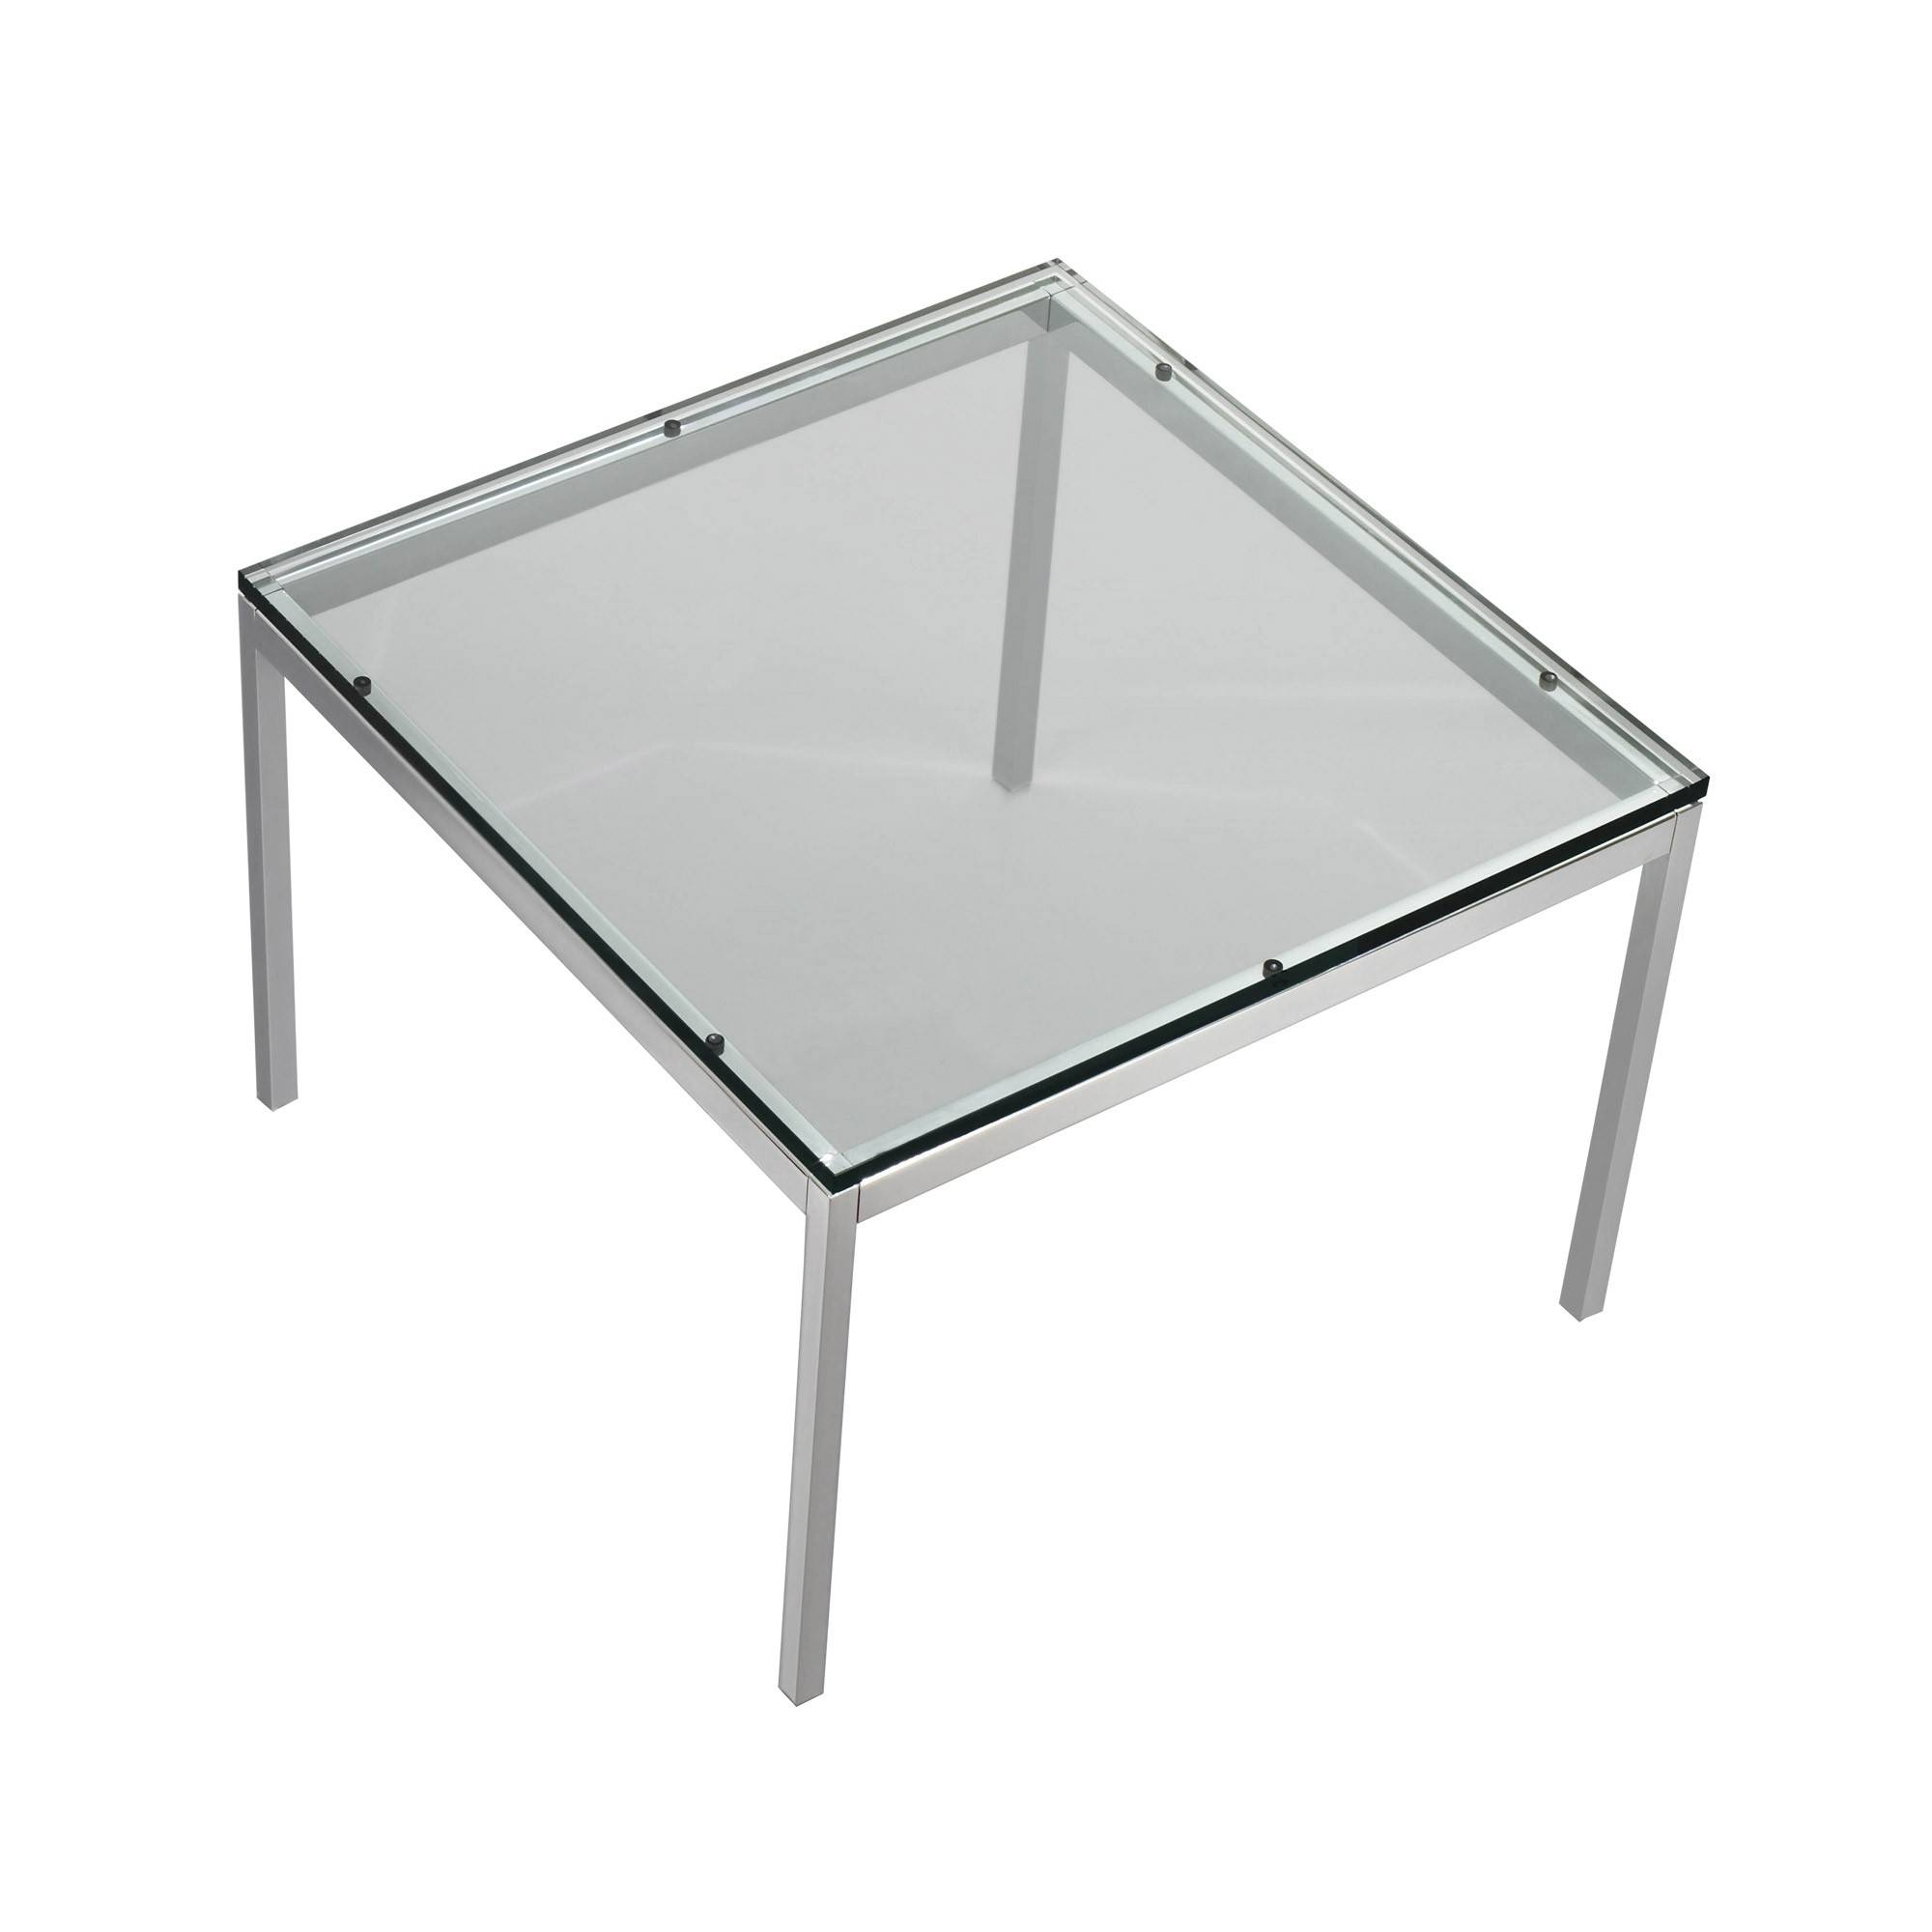 Florence Knoll Table - 60X60X43, Clear Glass Top, Chrome Base inside Chrome Coffee Table Bases (Image 19 of 30)